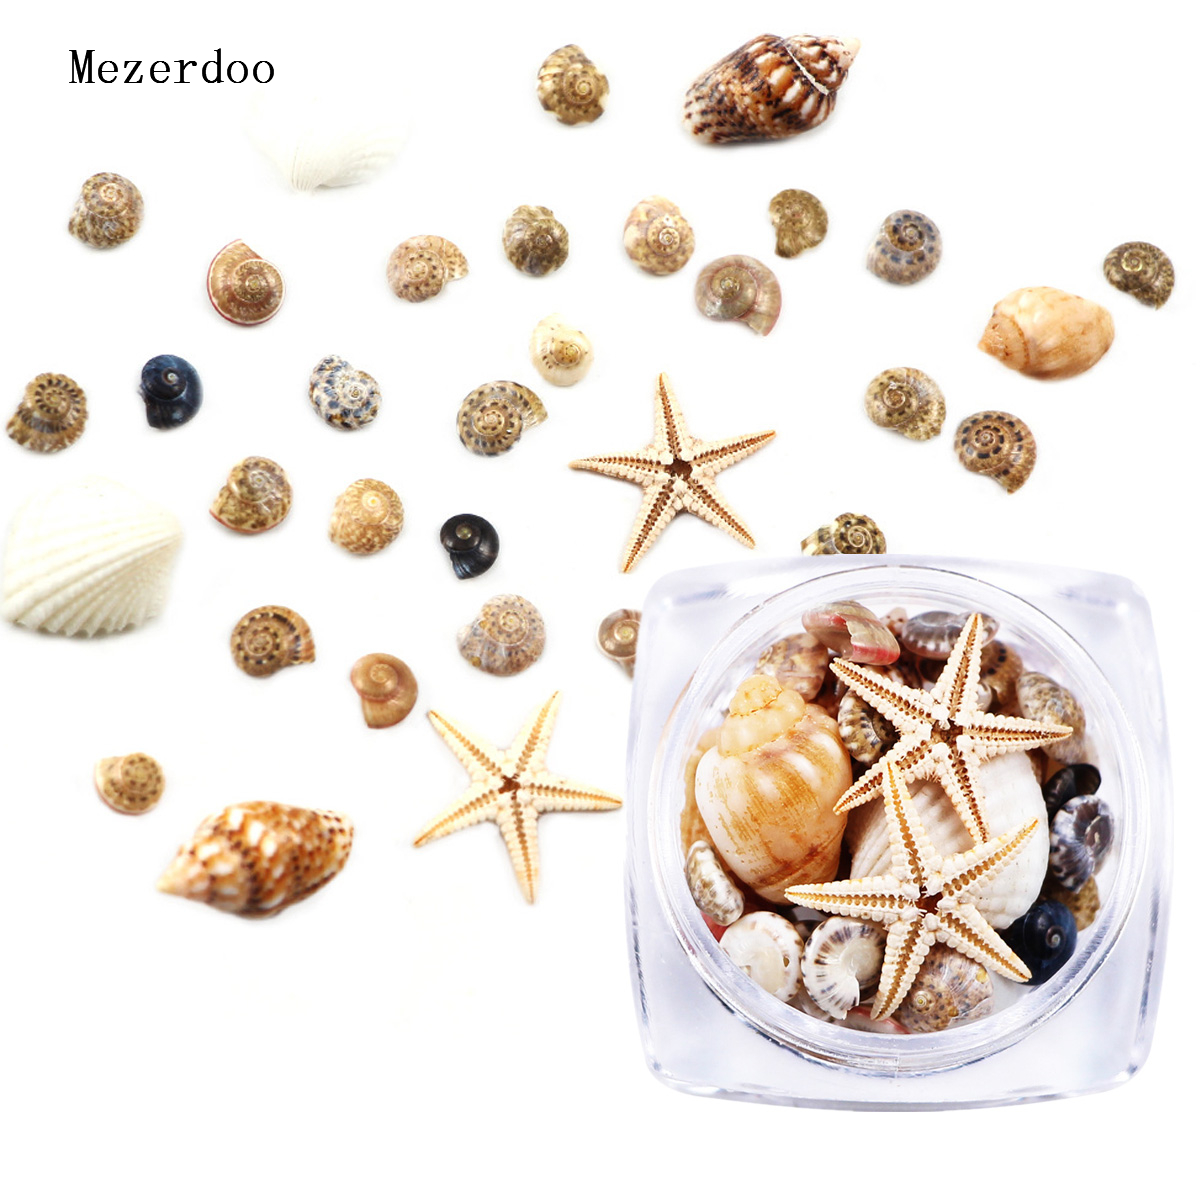 1/2/5 <font><b>Box</b></font> 3D Natural Nail <font><b>Art</b></font> Decoration Mini Conch Shells Starfish Sea Beach Ornaments Manicure <font><b>Tools</b></font> for DIY image